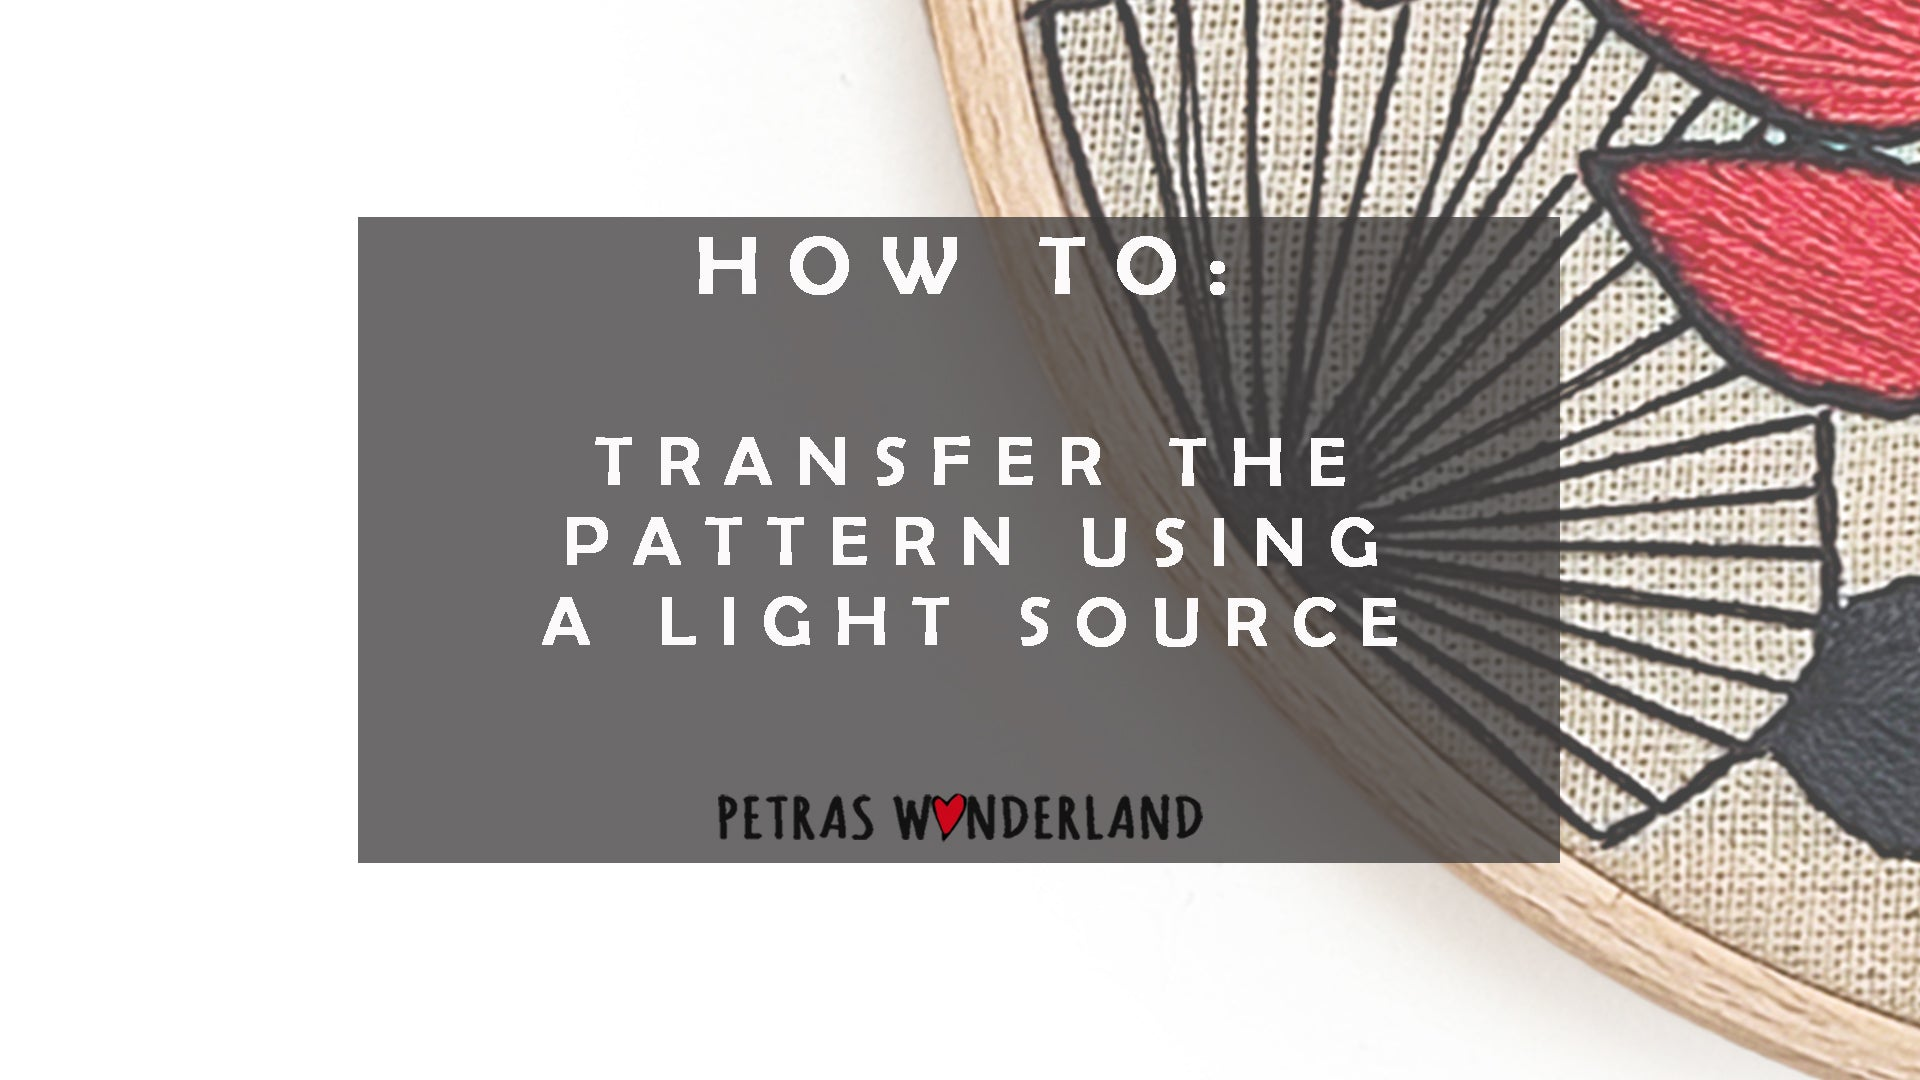 Transfer the pattern using a light source | HOW TO tutorial